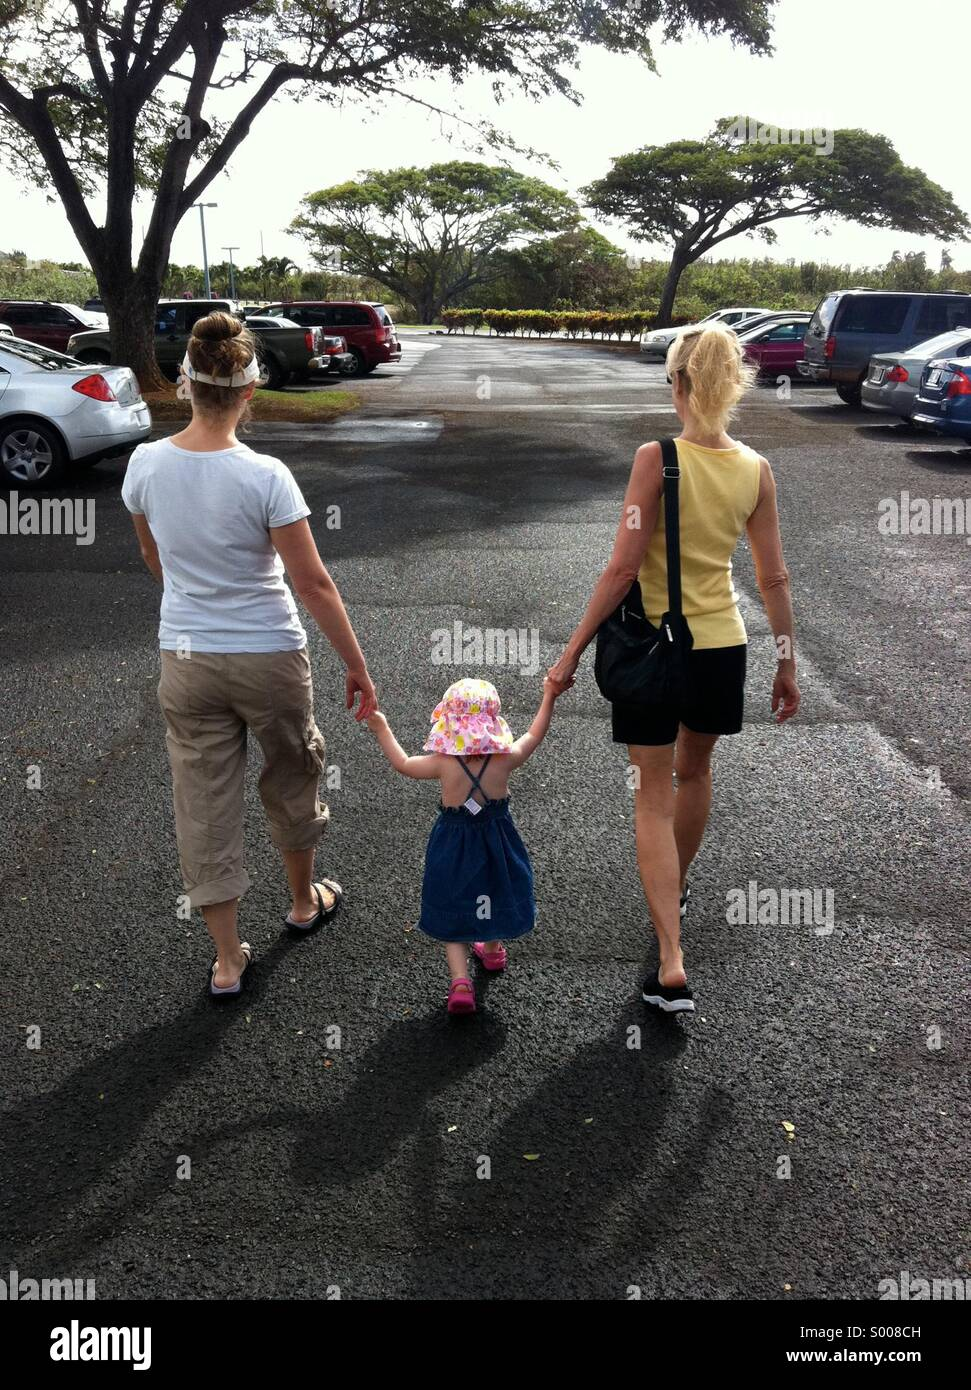 Two women & little girl hold hands in tropical parking lot.Stock Photo